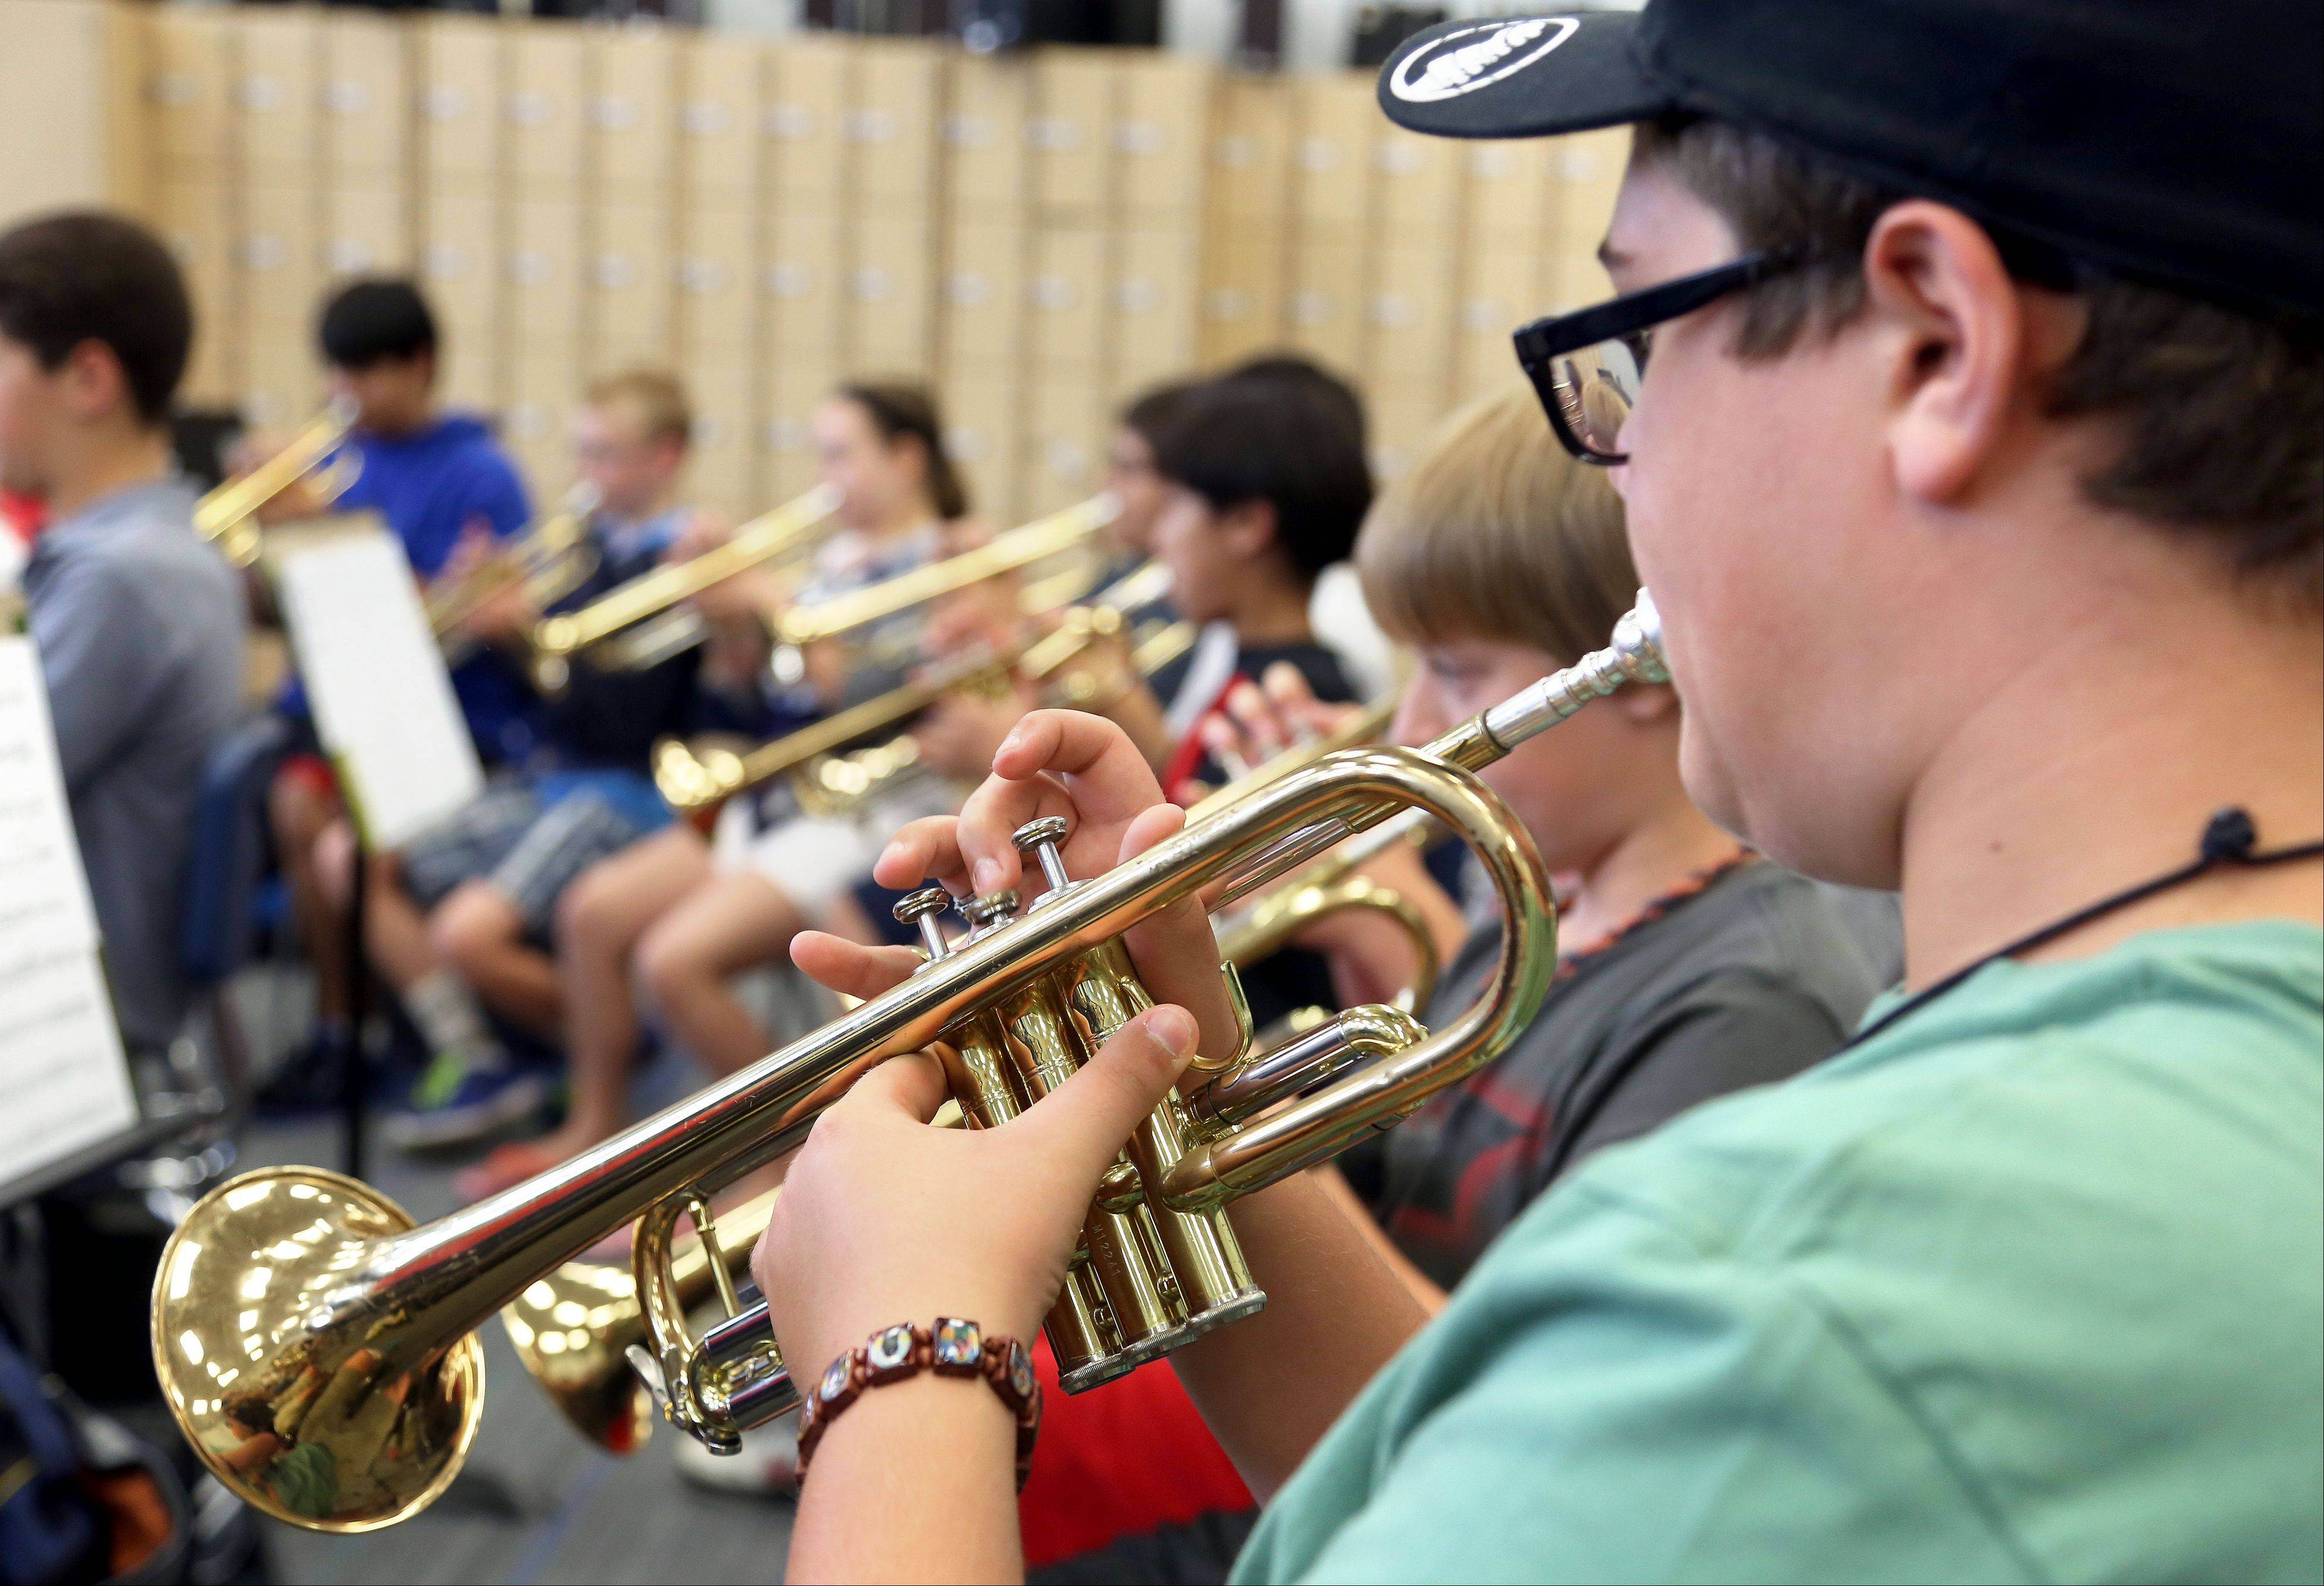 12-year-old Stevan Pastar of Vernon Hills plays his trumpet during Band and Orchestra Camp at Hawthorn Middle School South Monday.